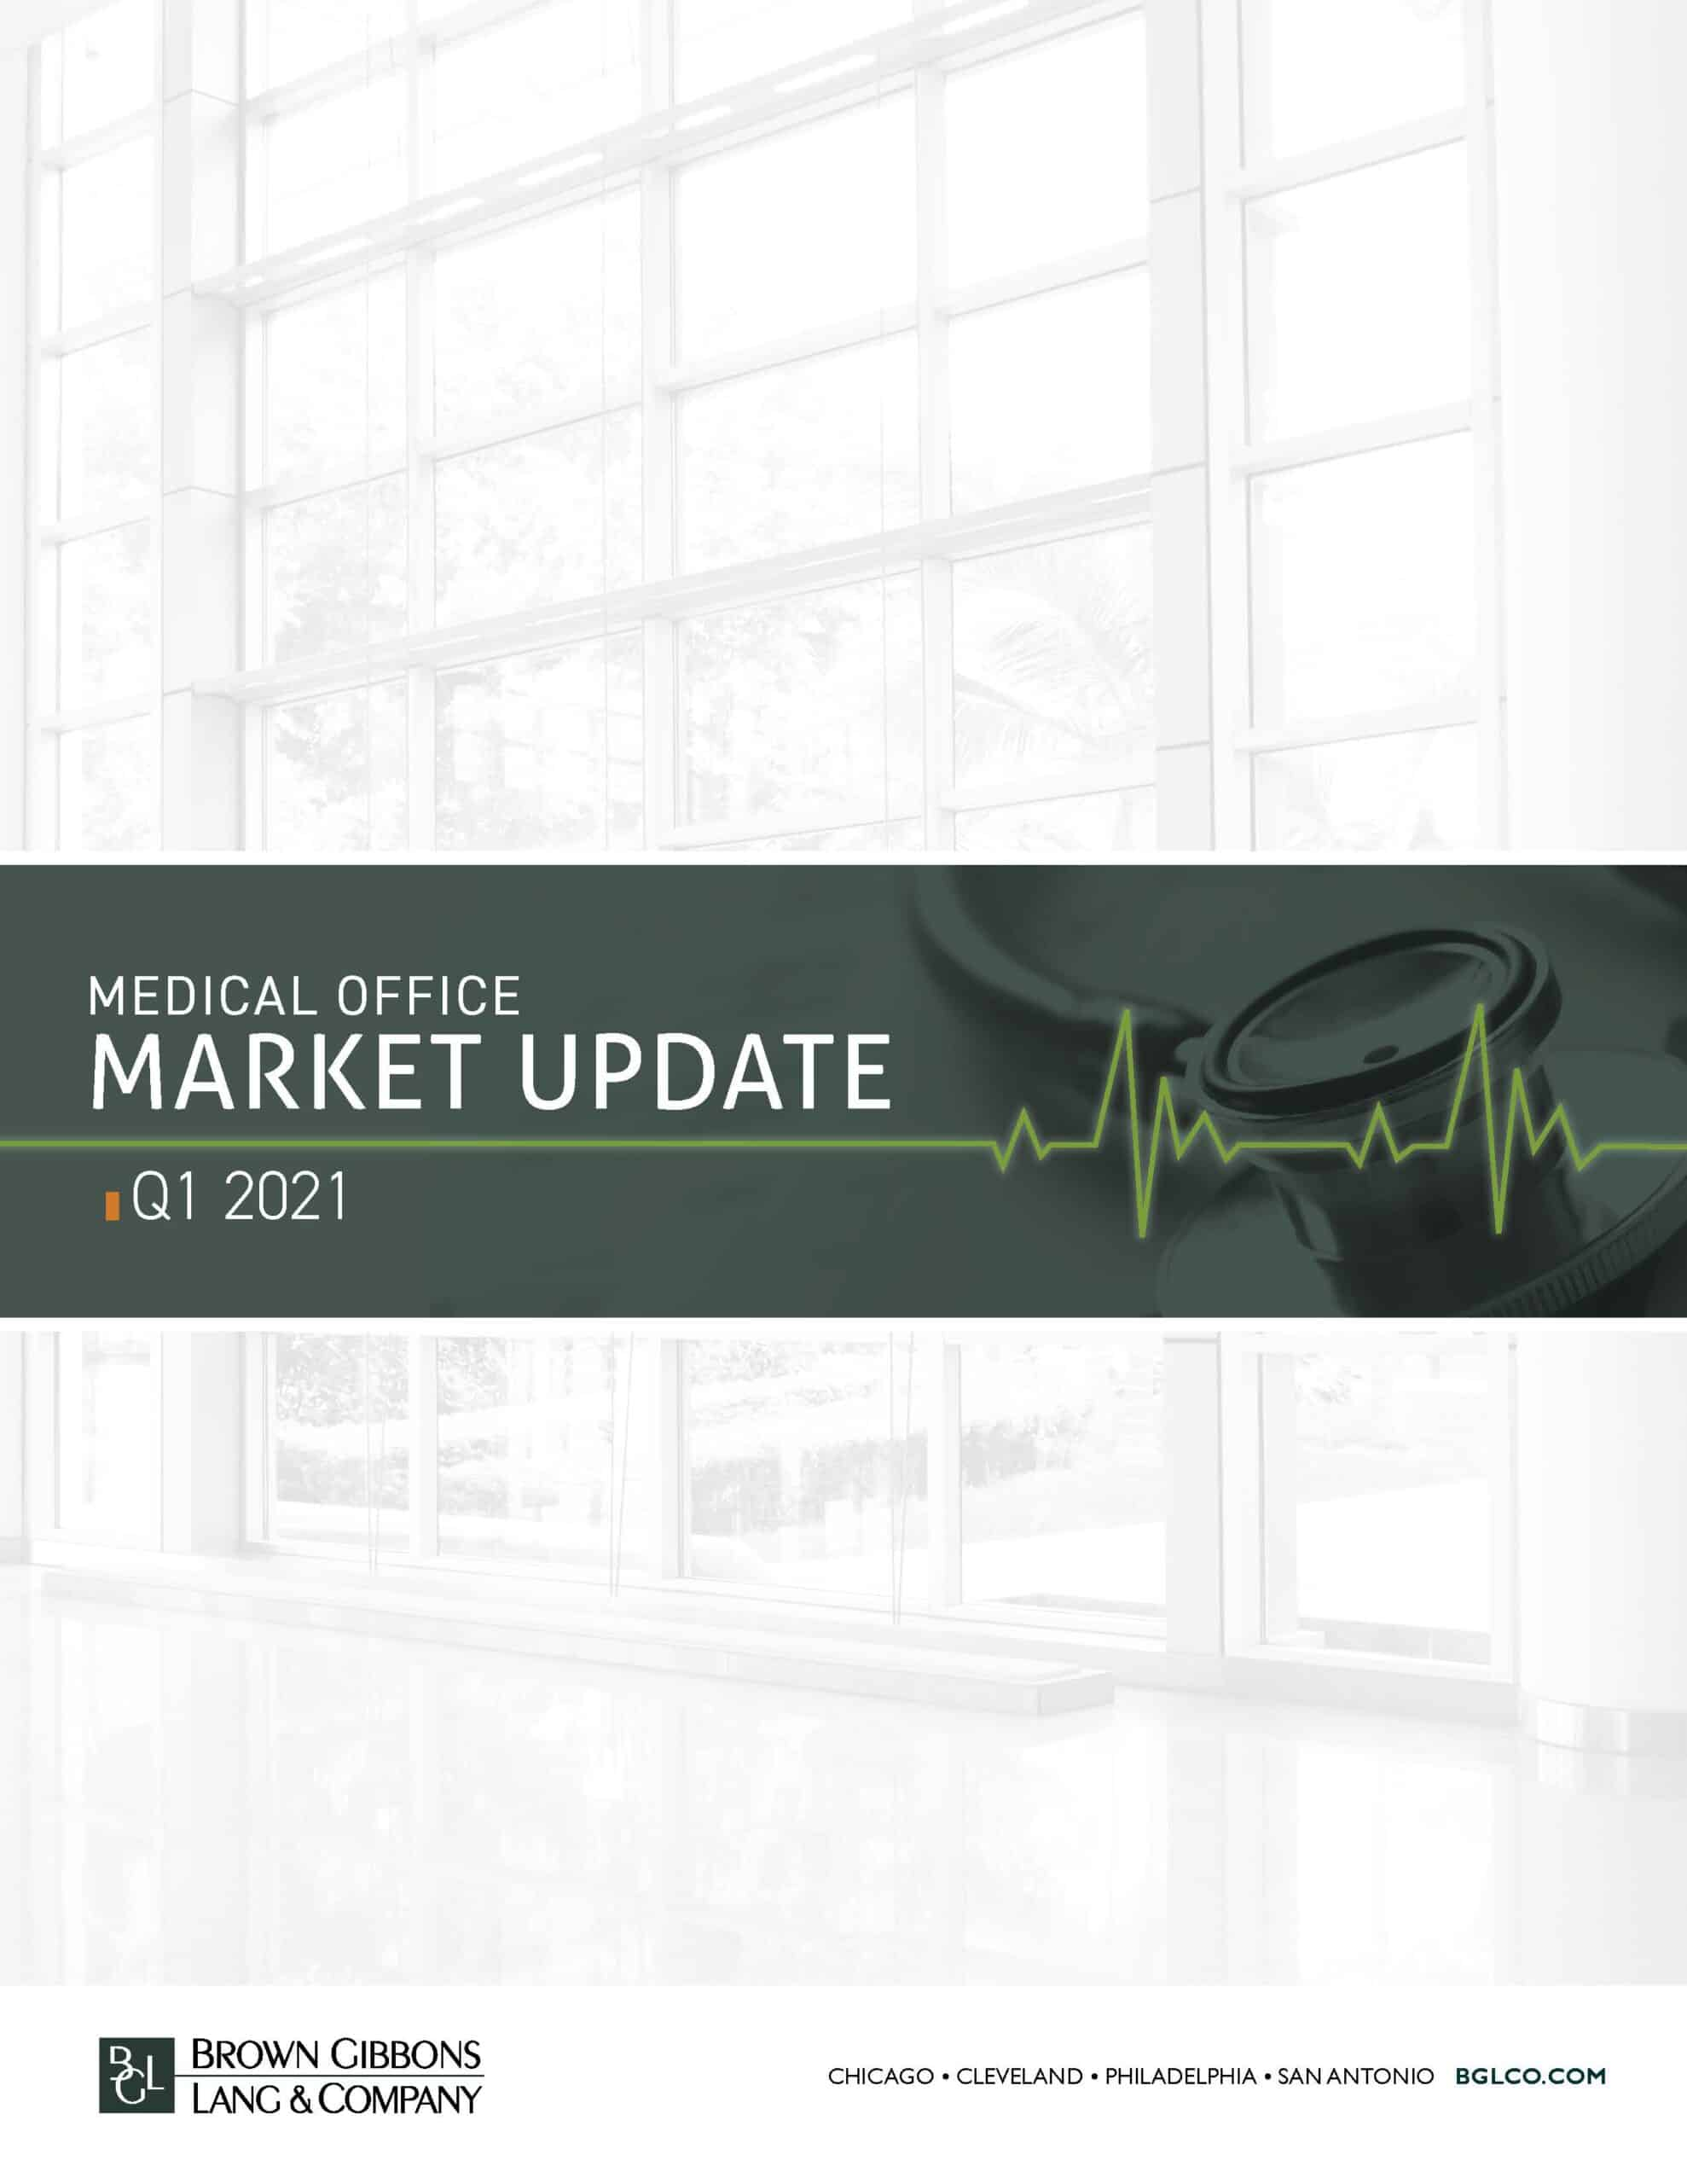 Image for BGL Healthcare Real Estate Medical Office Market Update – Q1 2021 Research